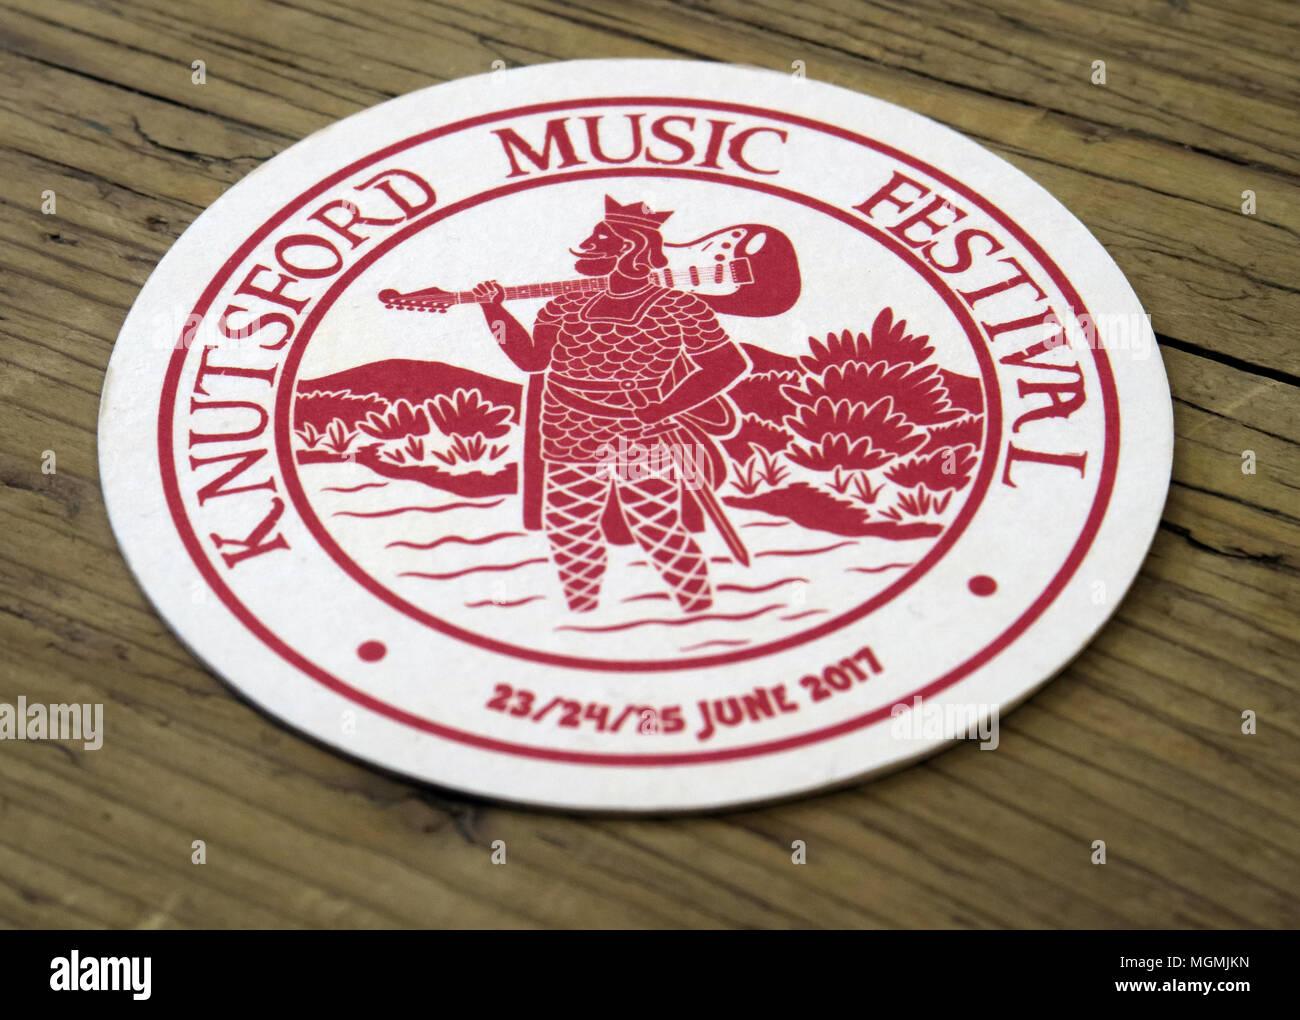 GoTonySmith,GB,Music,Festival,Beermat,Drip,Beer,Ale,CAMRA,mat,2017,22/23/24,22nd,23rd,24th,22nd